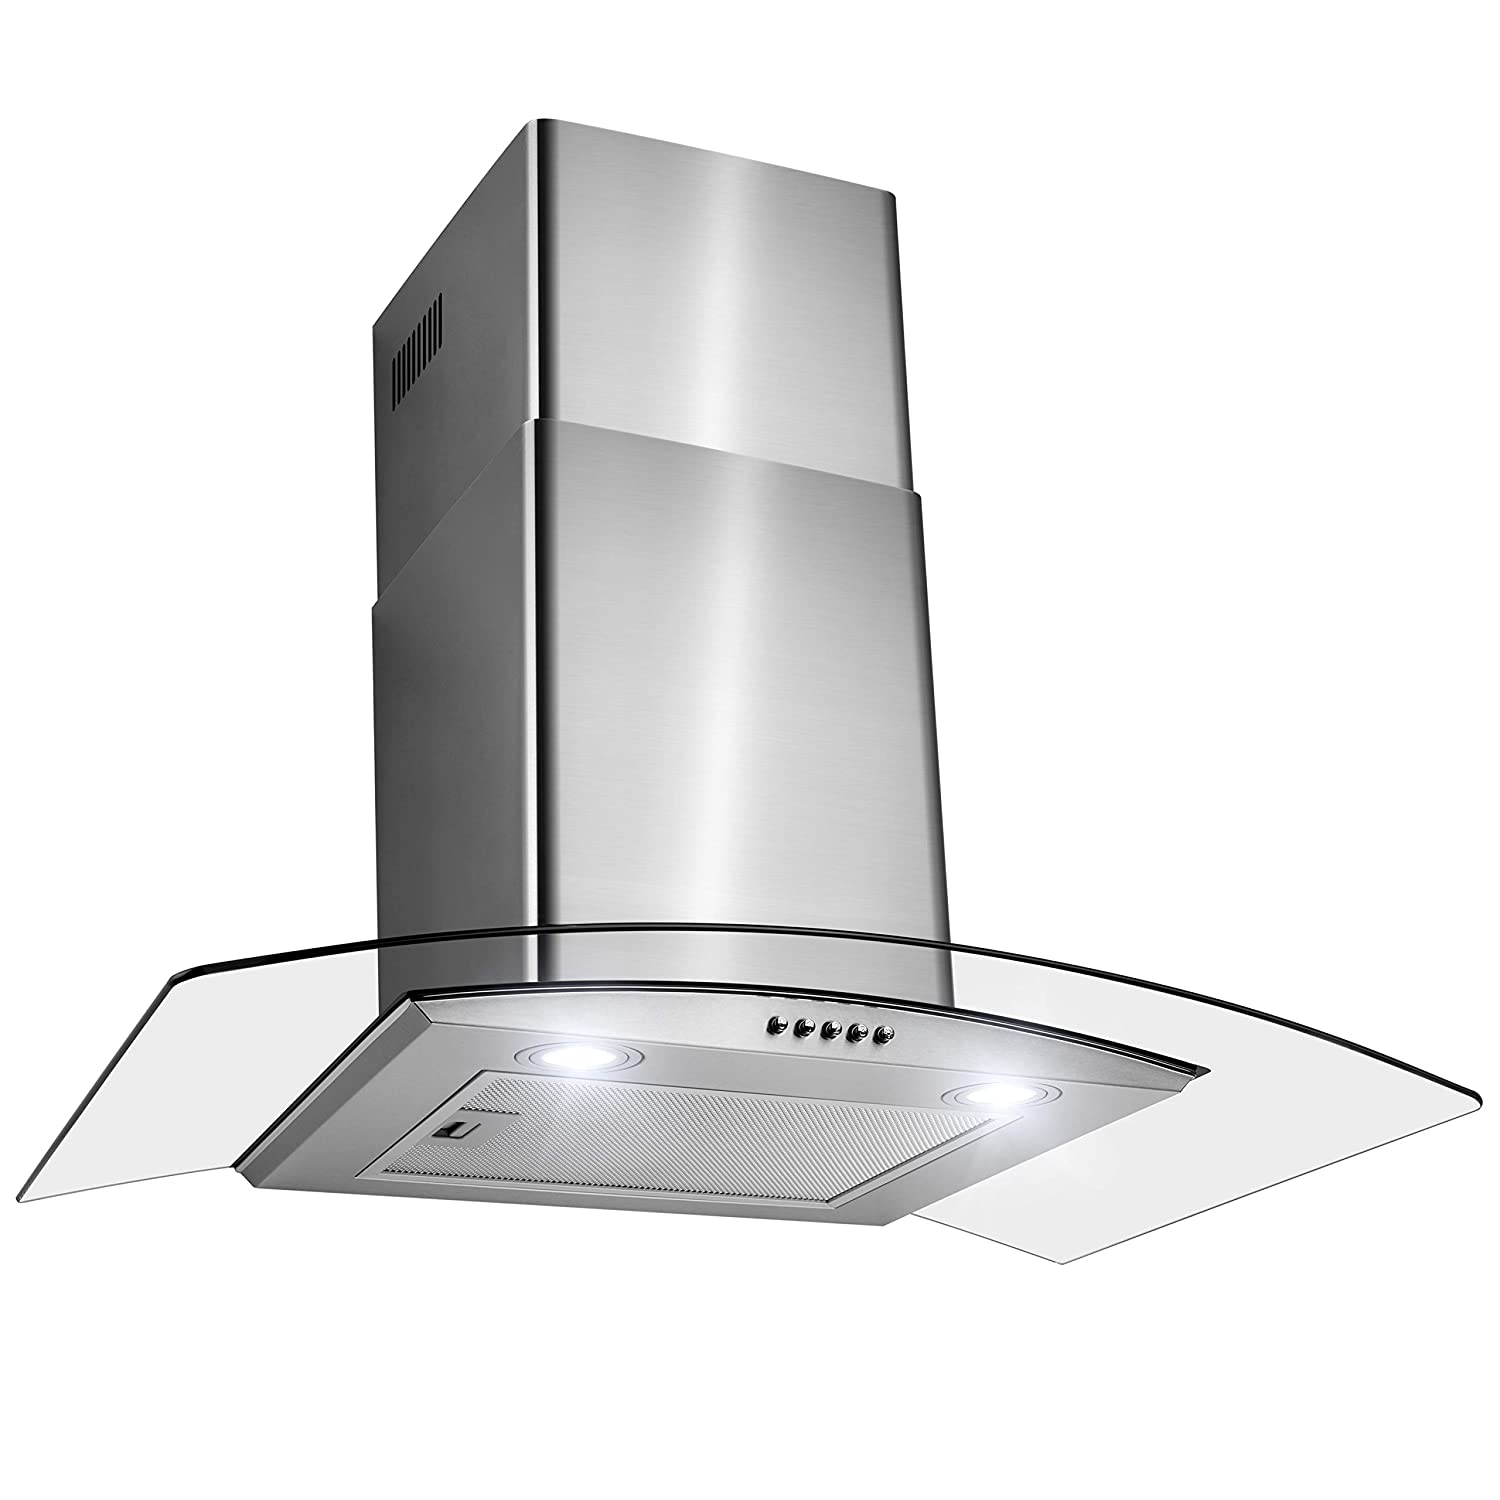 FIREBIRD 30 Wall Mount Stainless Steel Tempered Glass Wall Mount Powerful Push Button Control Kitchen Vent Fan Range Hood FB-RH0370